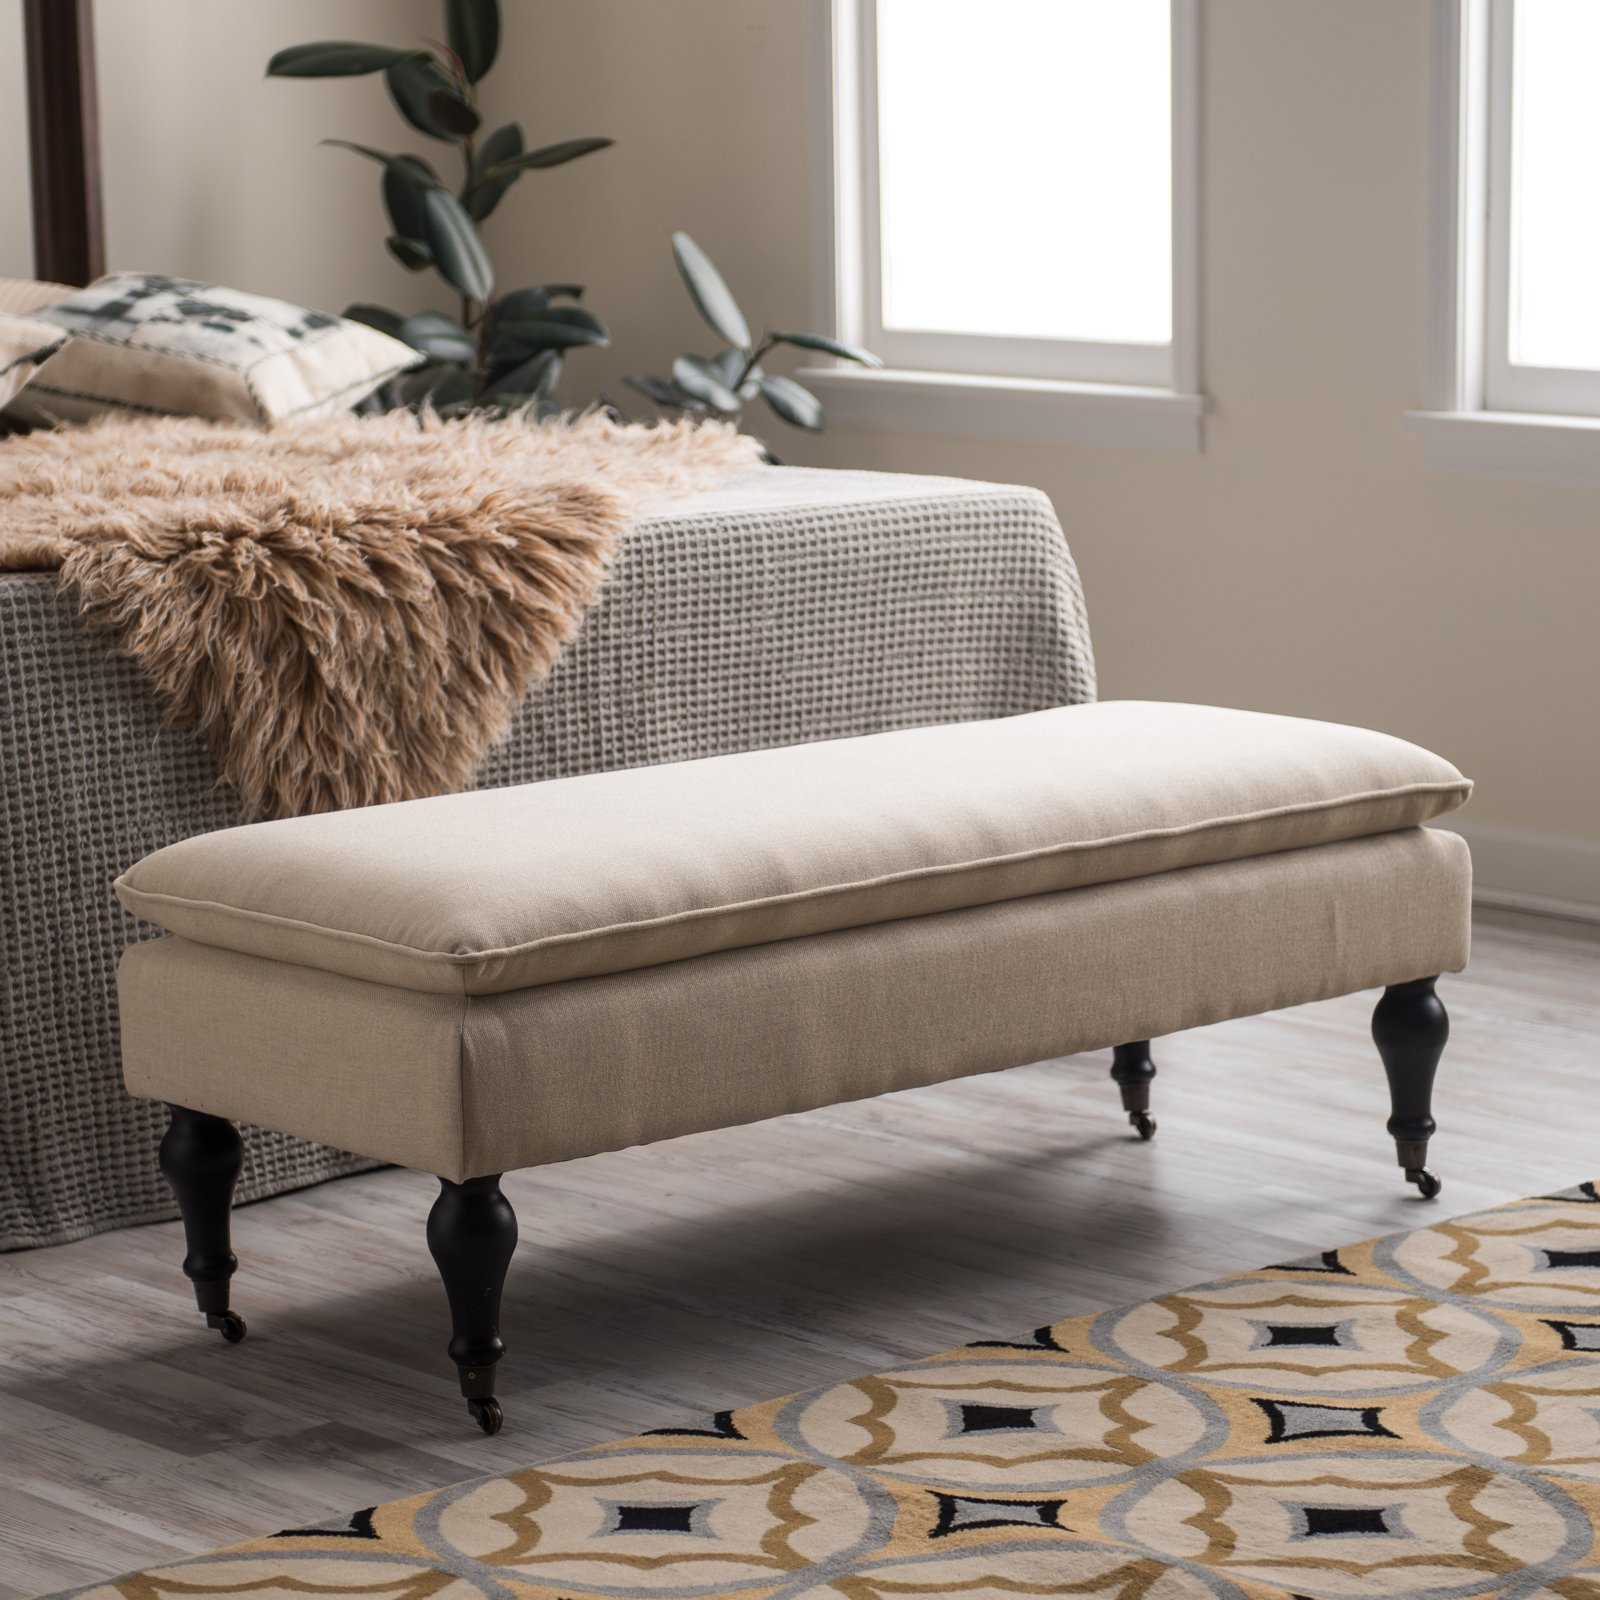 Belham Living Addison Pillow Top Upholstered Bench